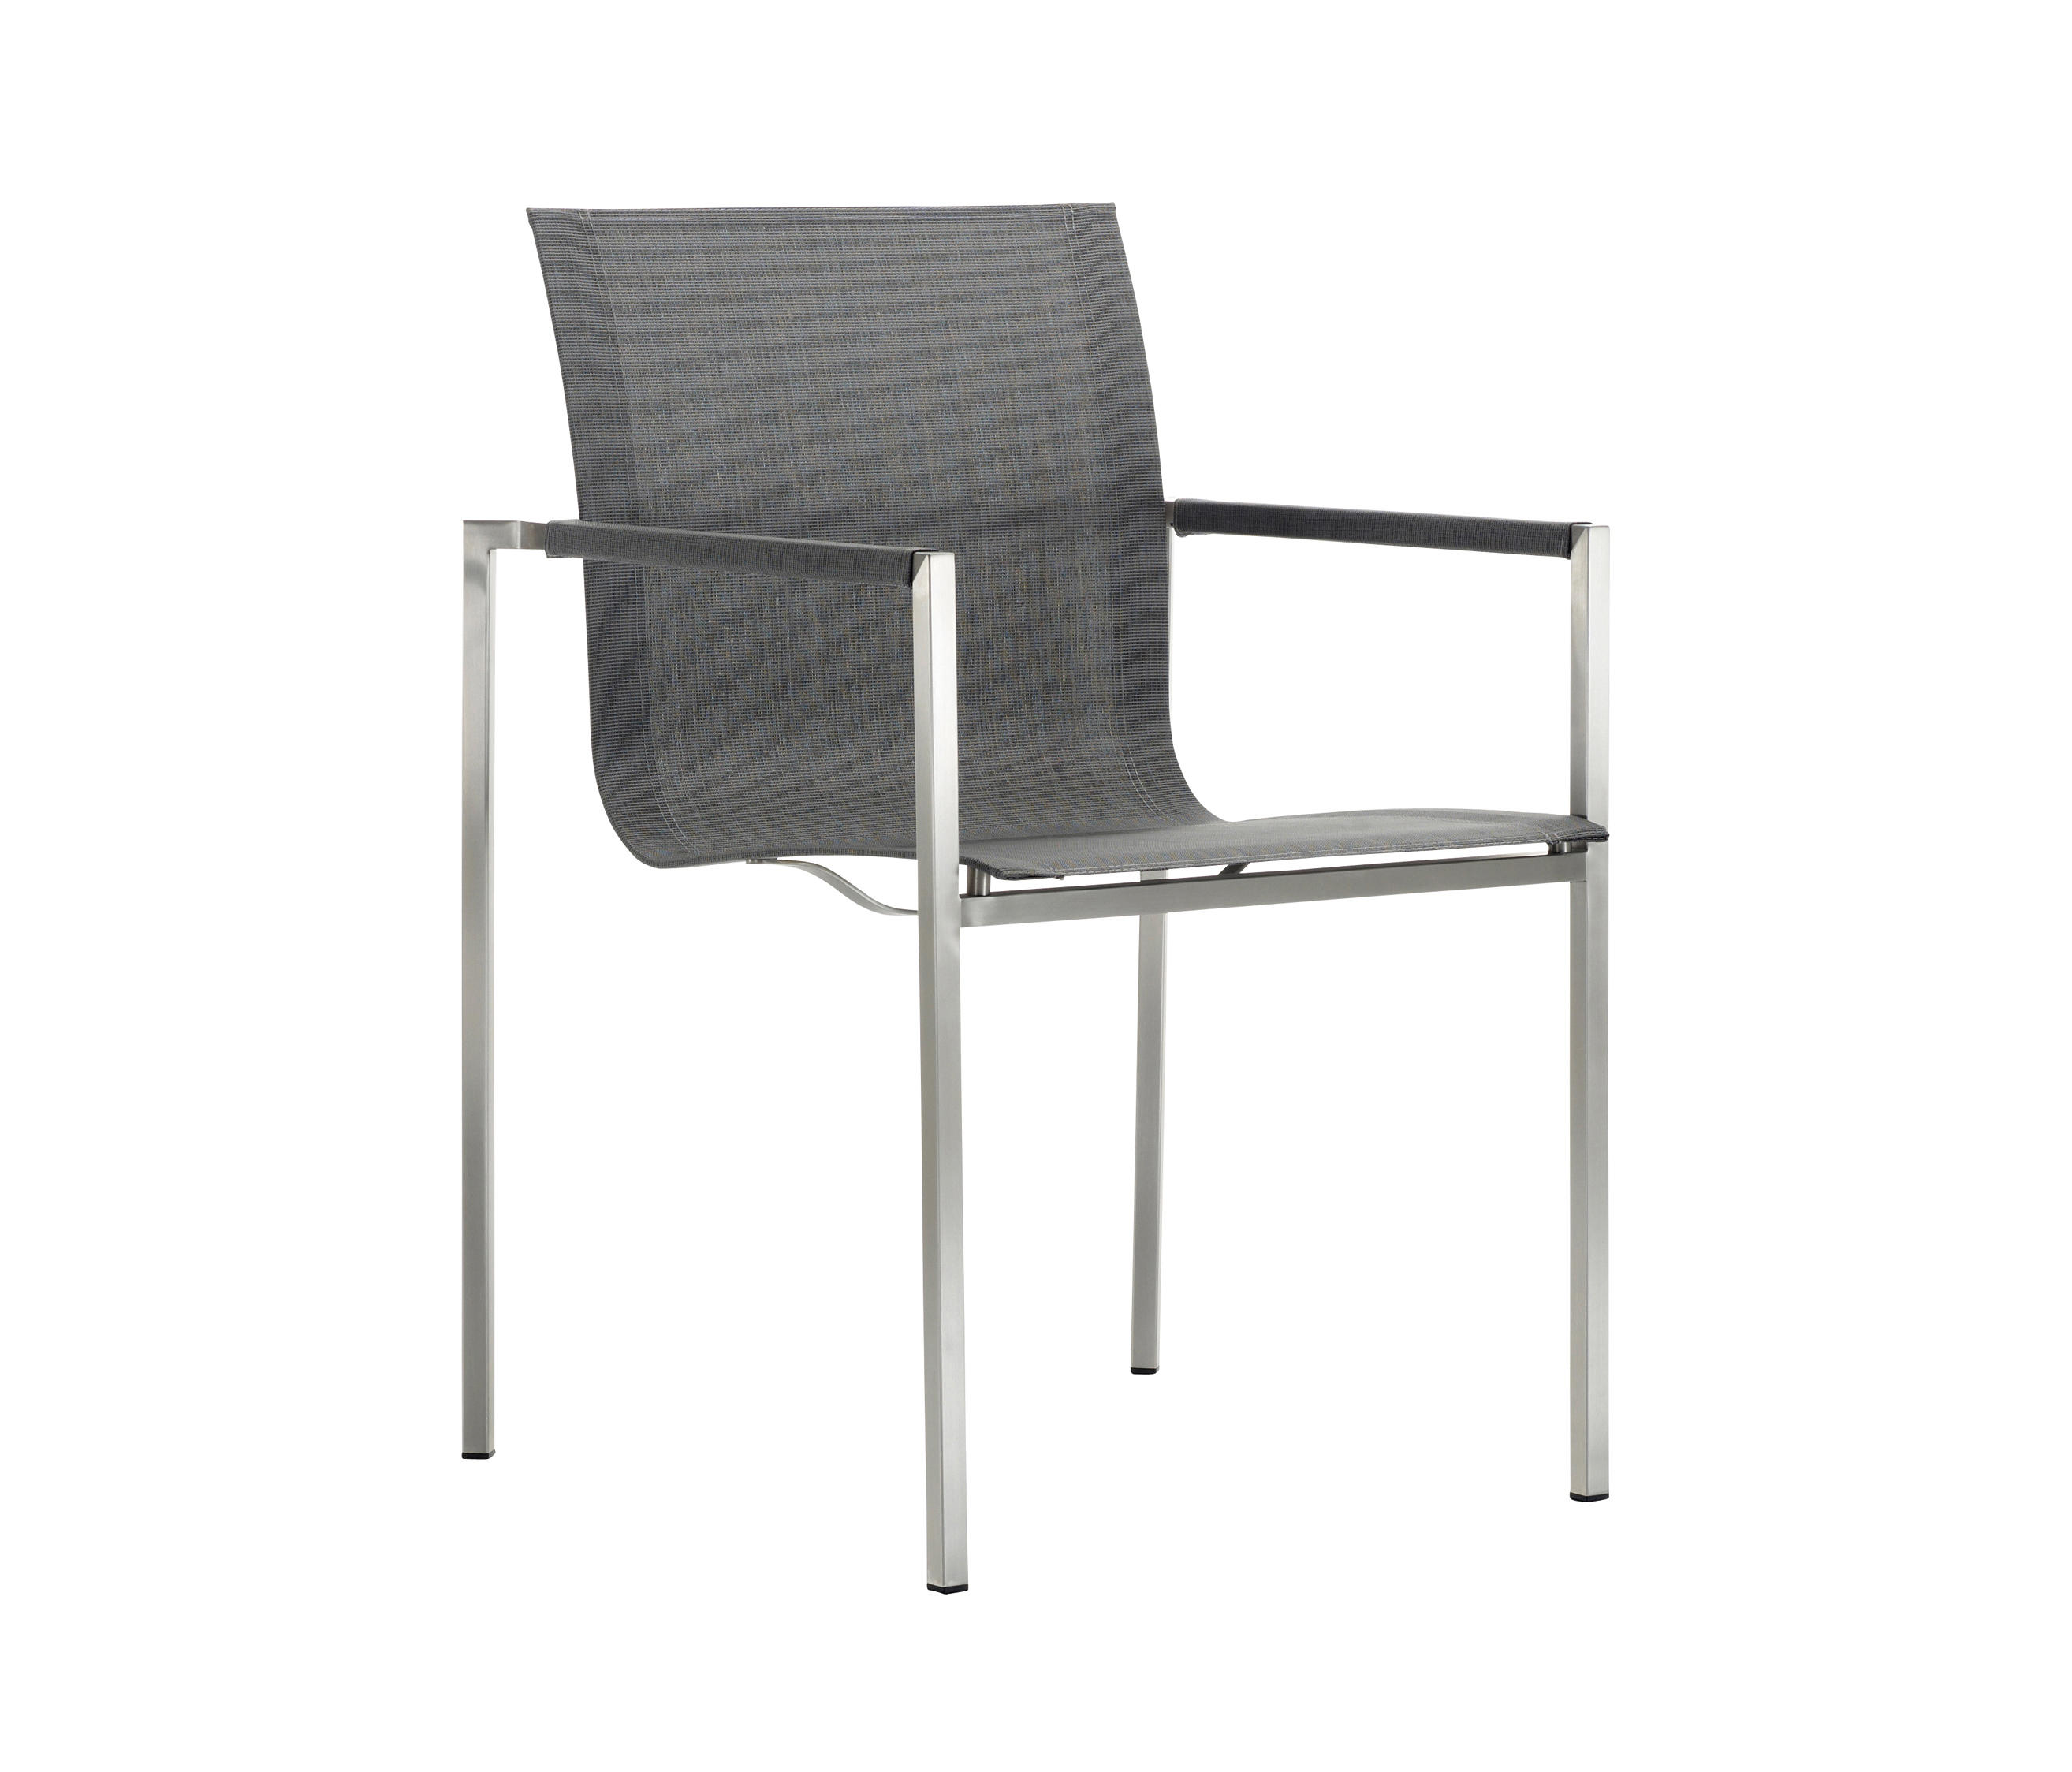 PURE STAINLESS STEEL STACKING CHAIR Garden chairs from solpuri